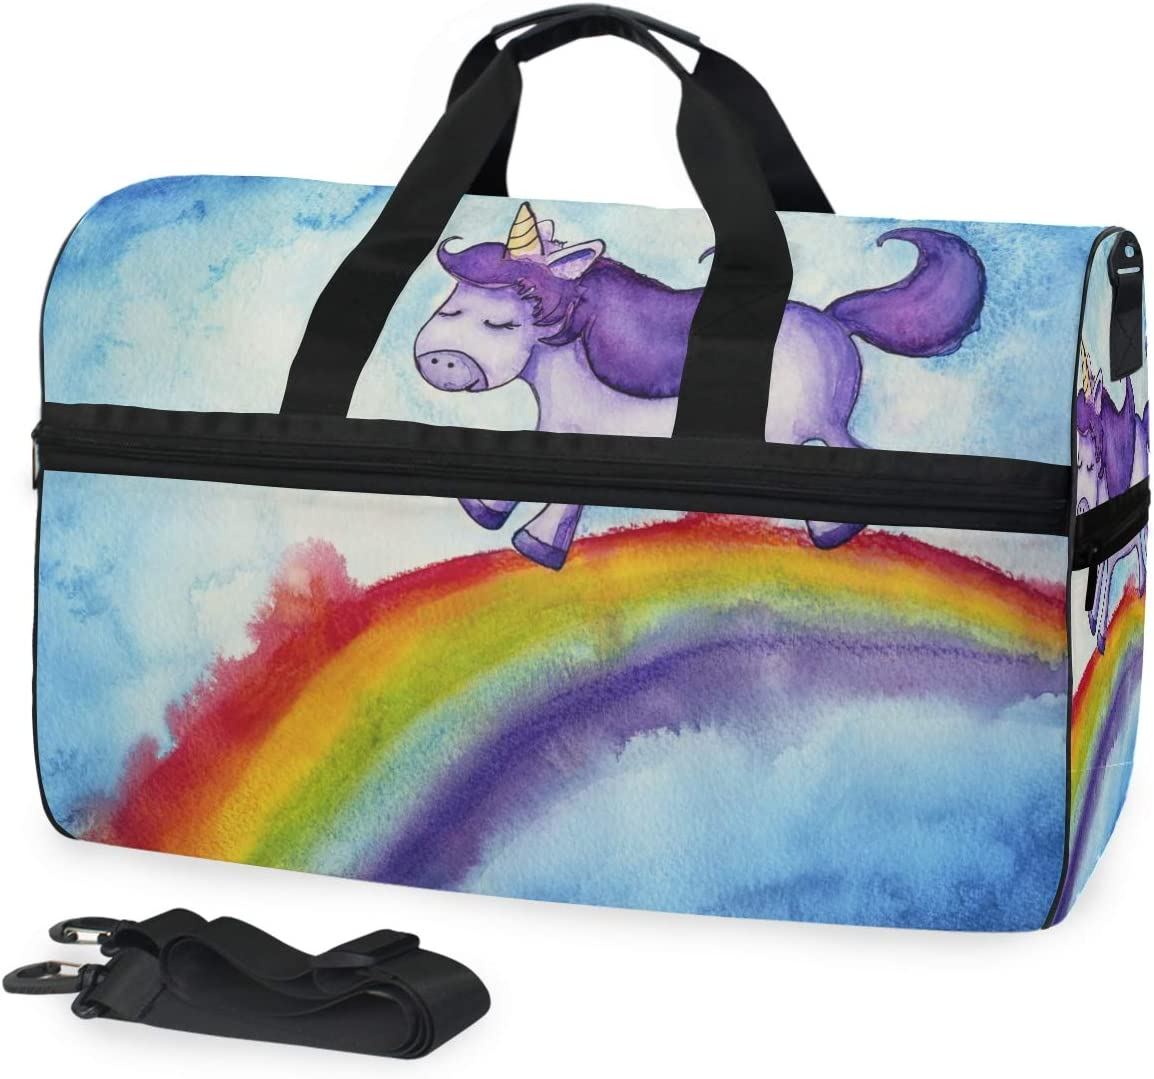 Unicorn Sports Gym Bag with Shoes Compartment Travel Duffel Bag for Men and Women